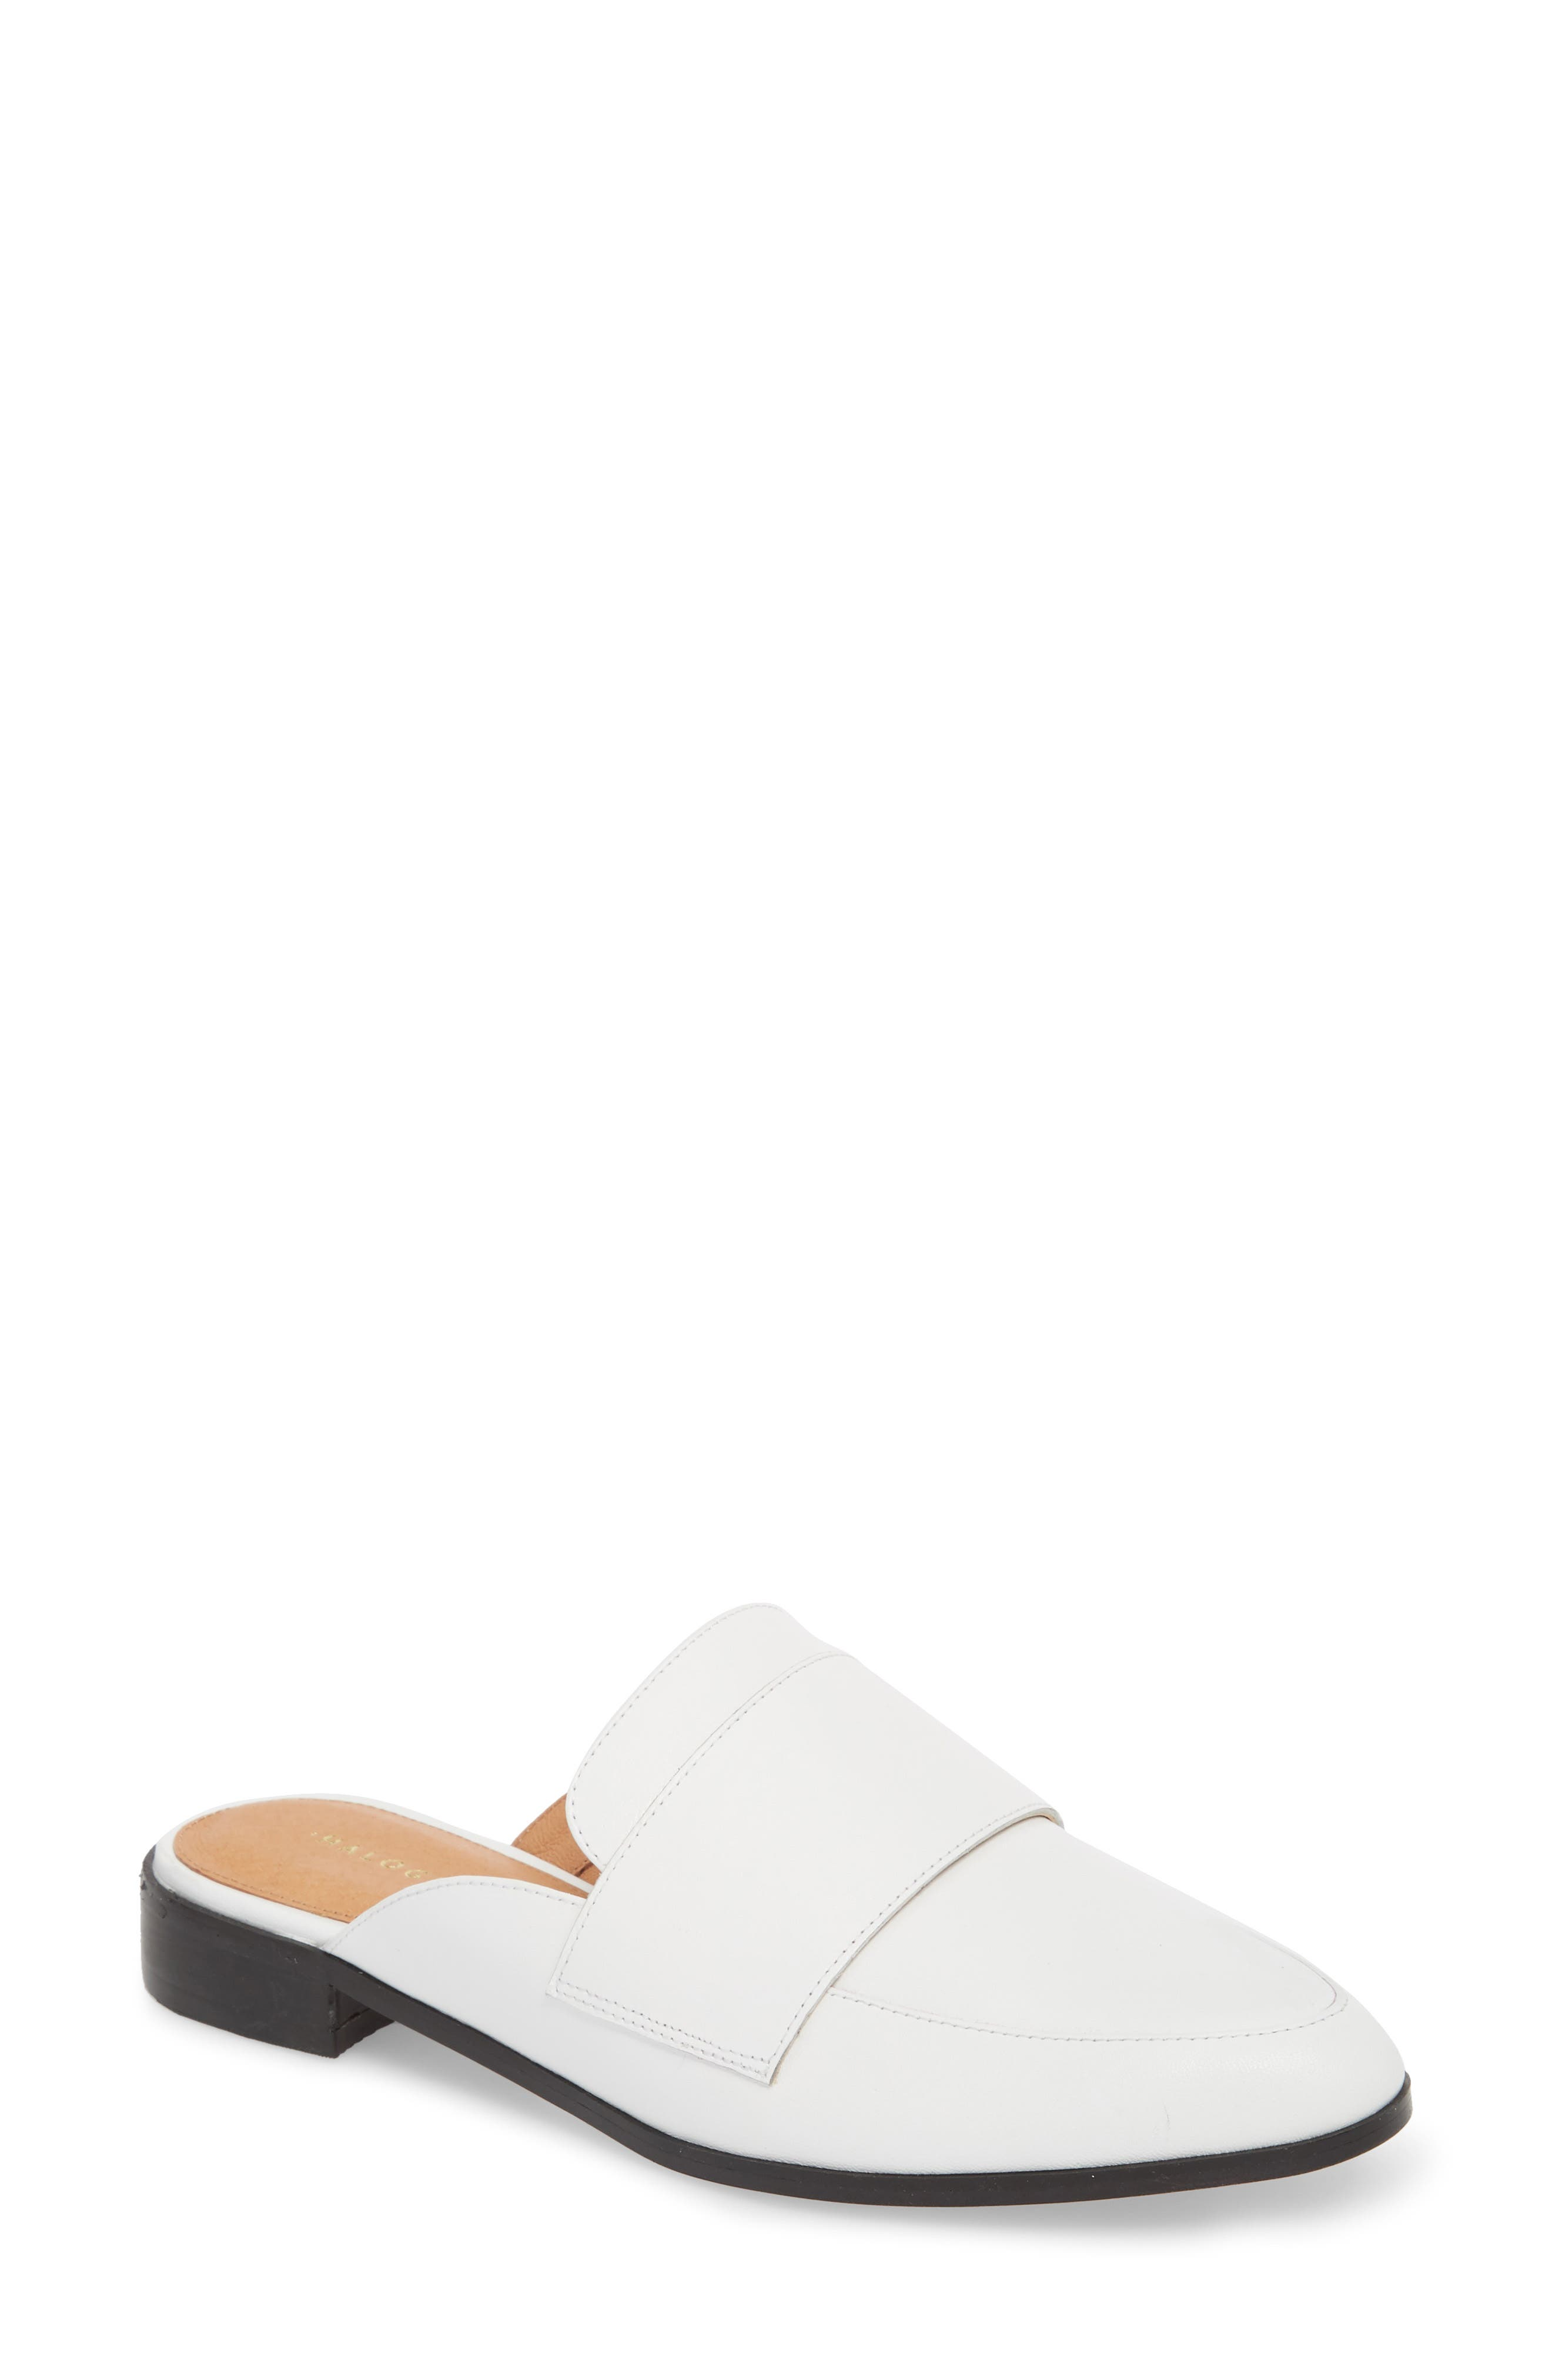 Violet Mule,                         Main,                         color, White Leather